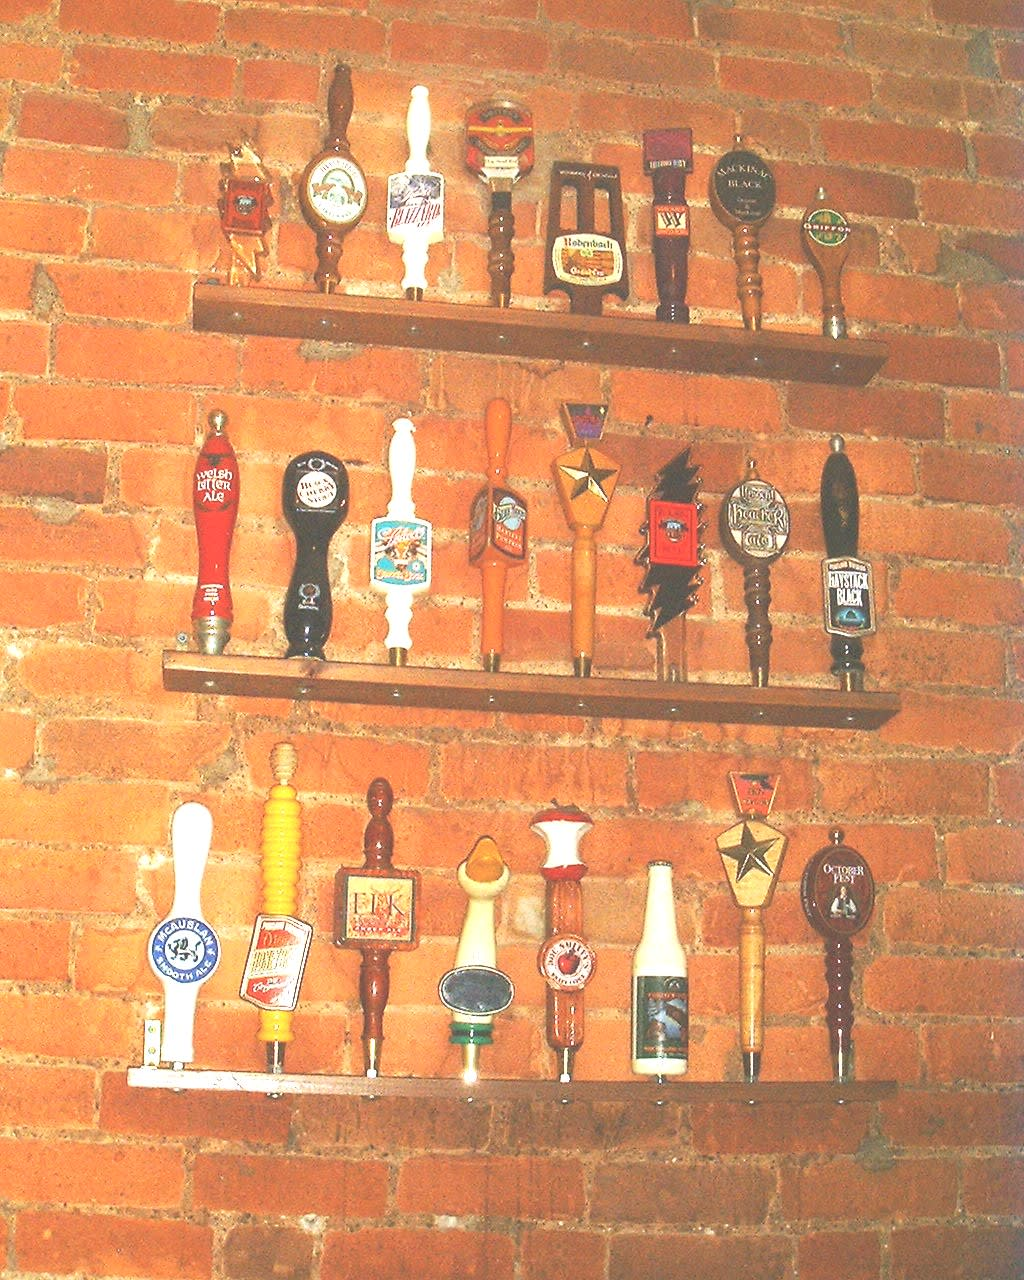 Some of the many past Taps at Ashley's Restaurant